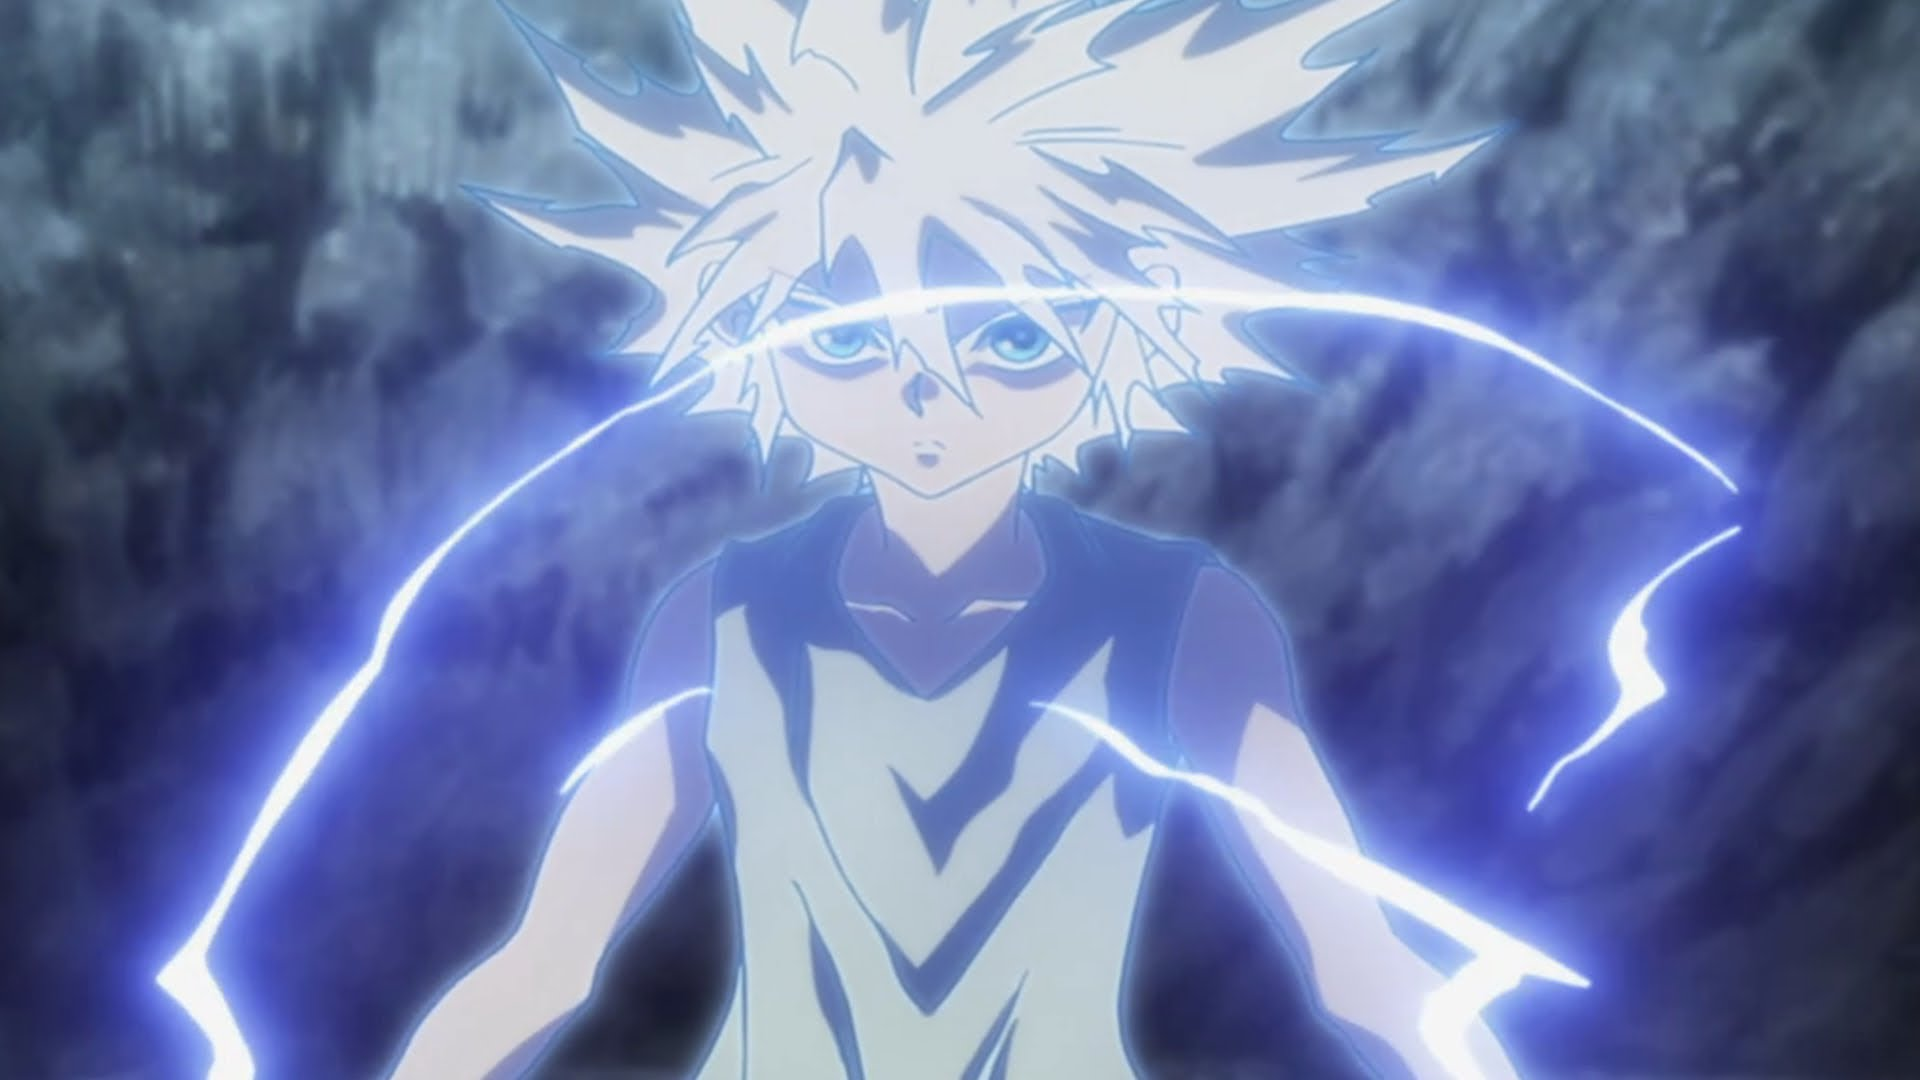 What Hunter X Hunter Character Are You